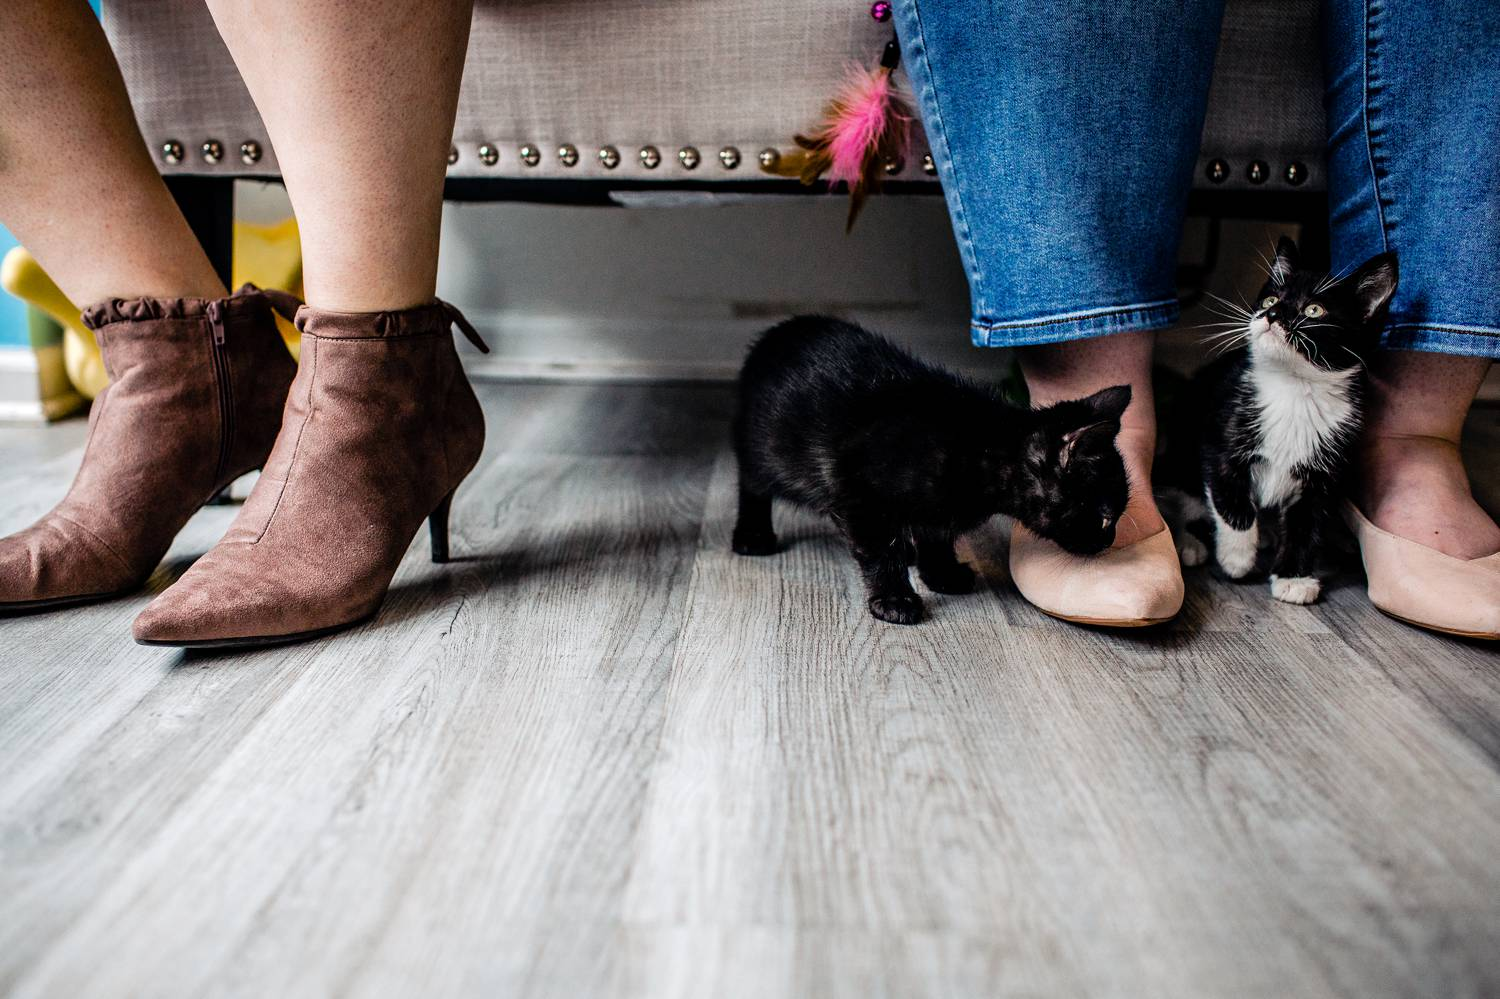 Two kittens roam around the feet of a lesbian couple in a cat cafe